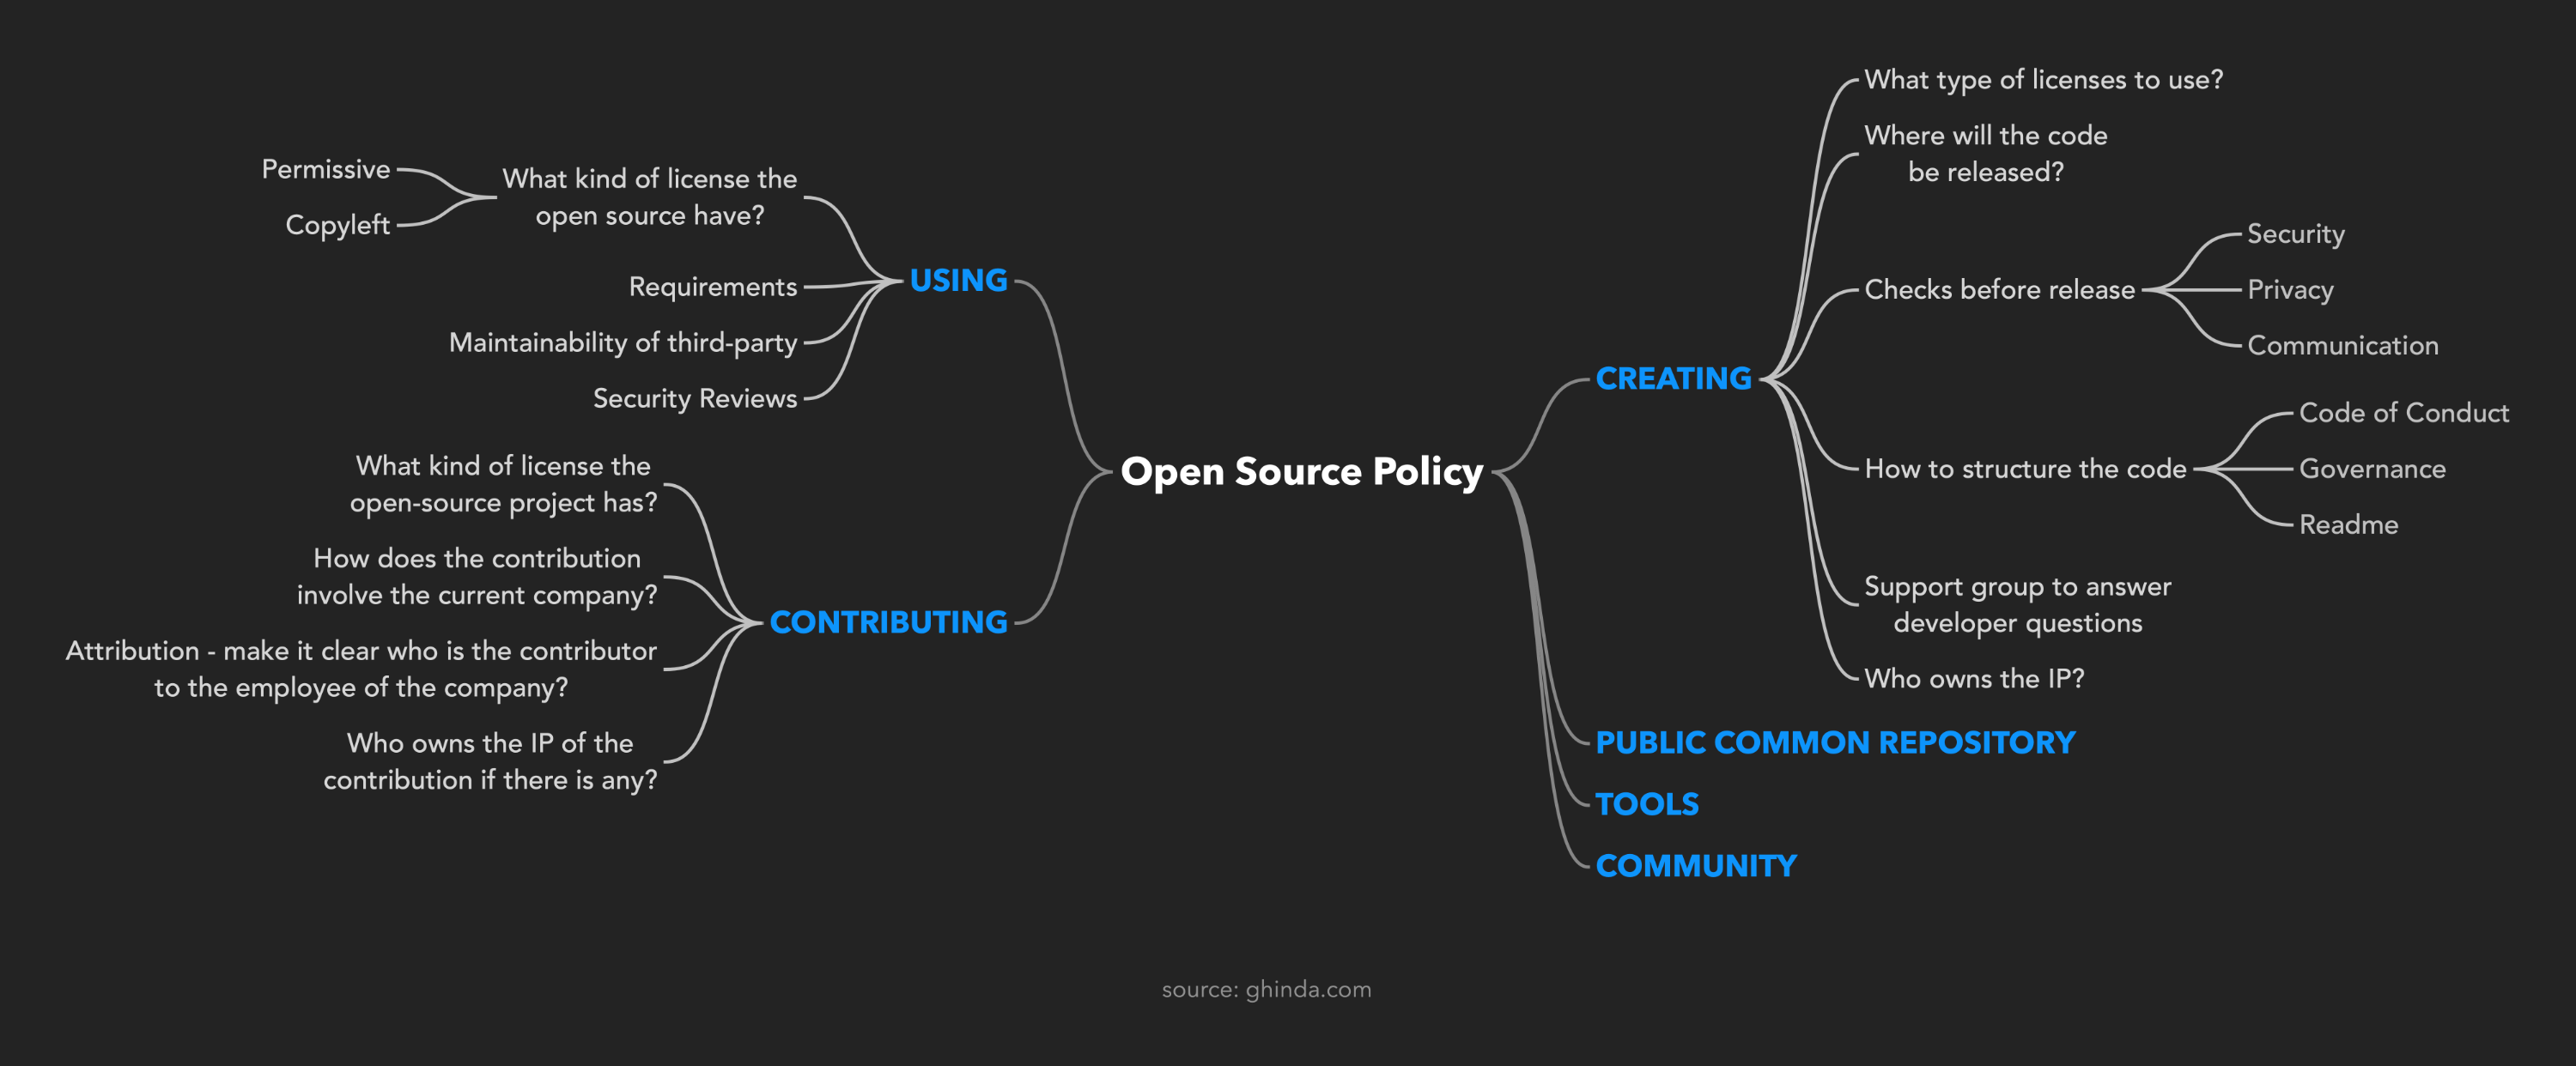 Open Source Policy - Topics to include